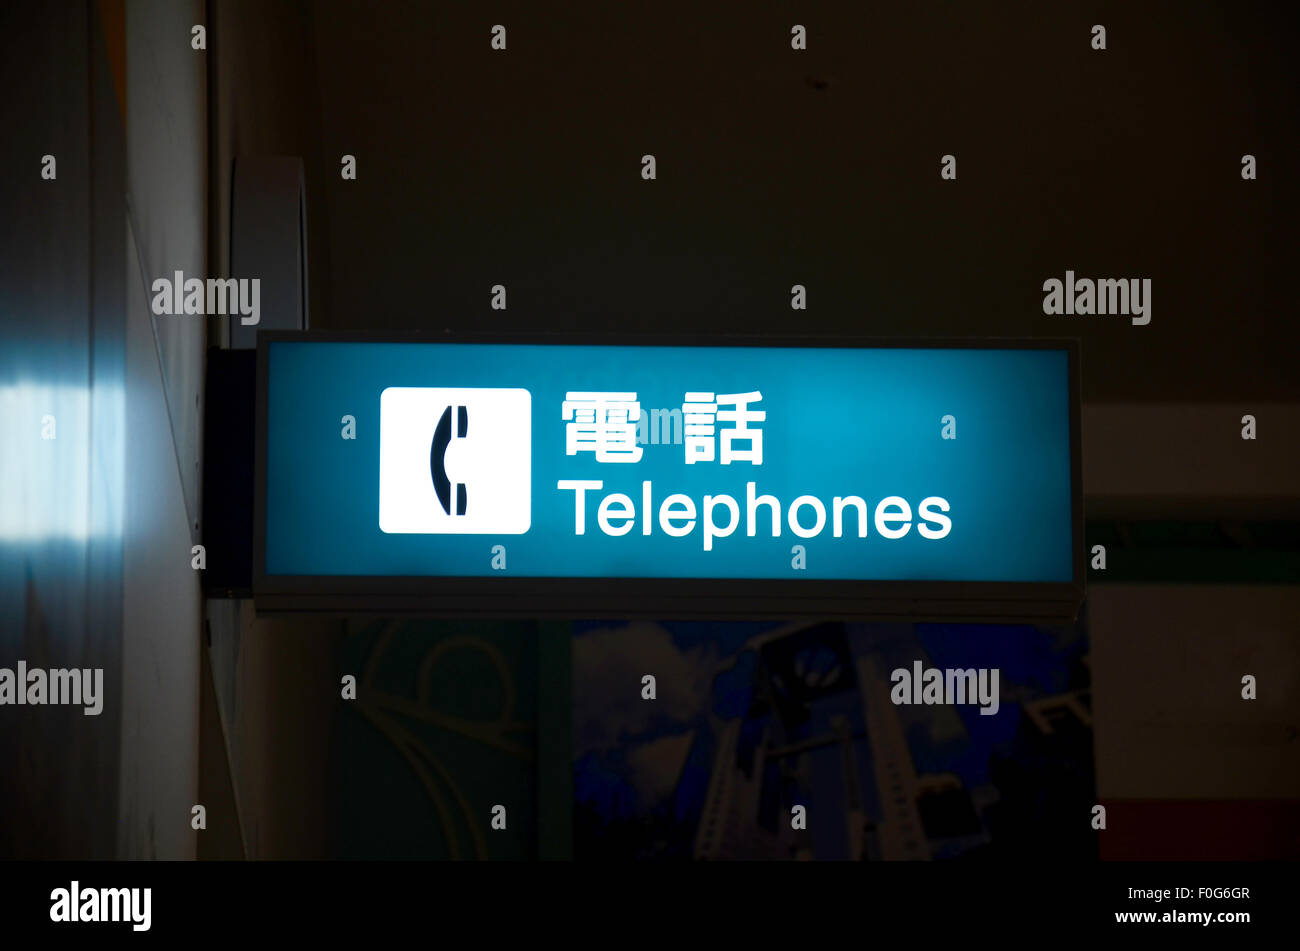 Public telephone label in Kansai Airport of Japan - Stock Image